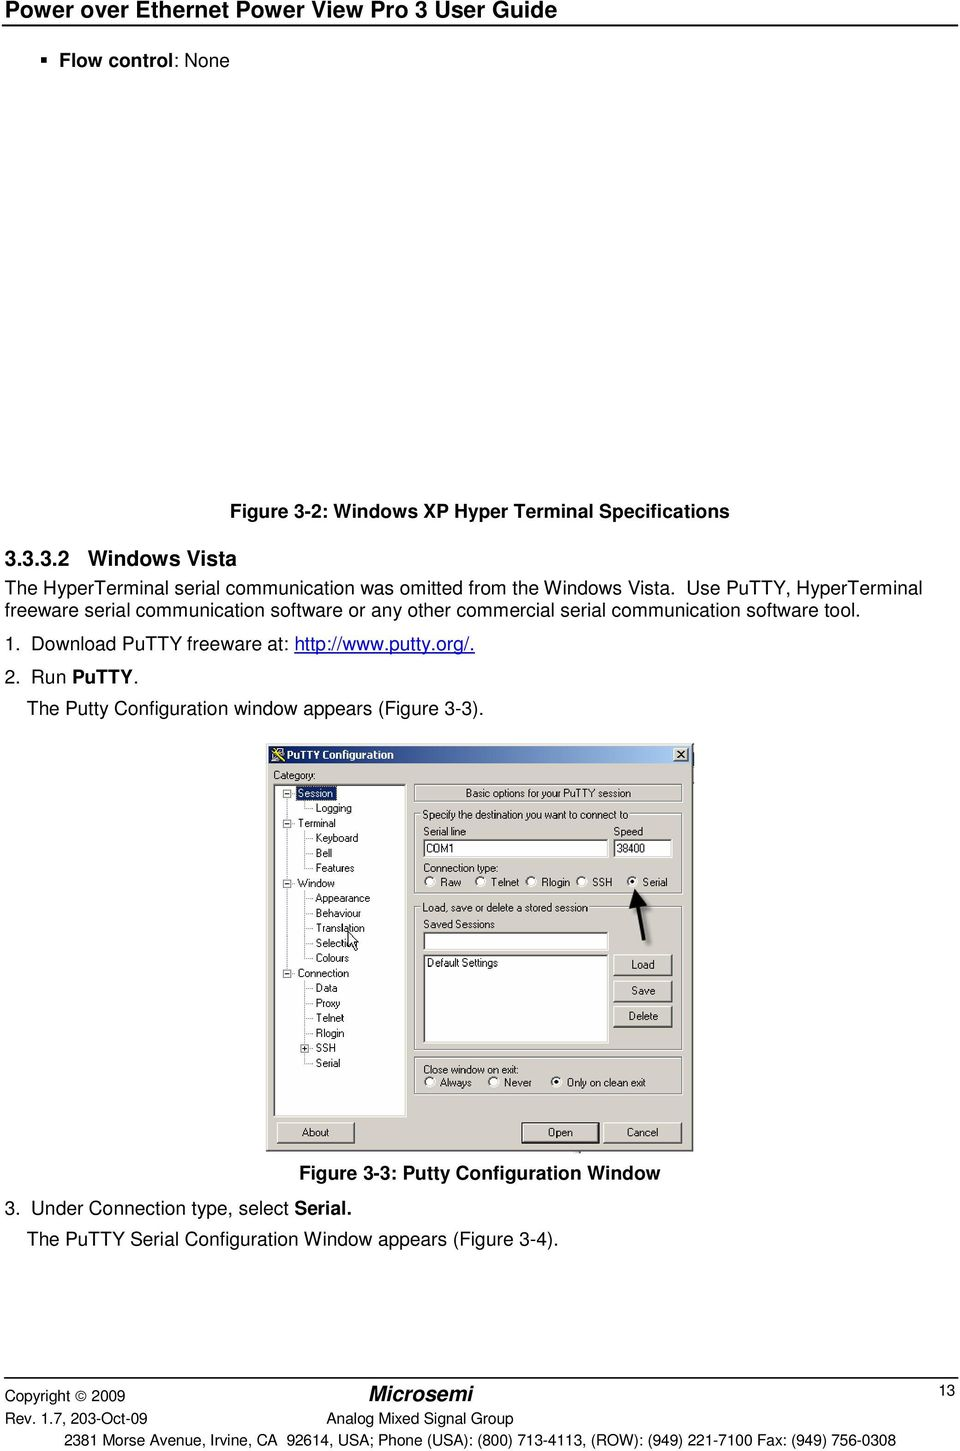 Power over Ethernet  Power View Pro 3 - PDF